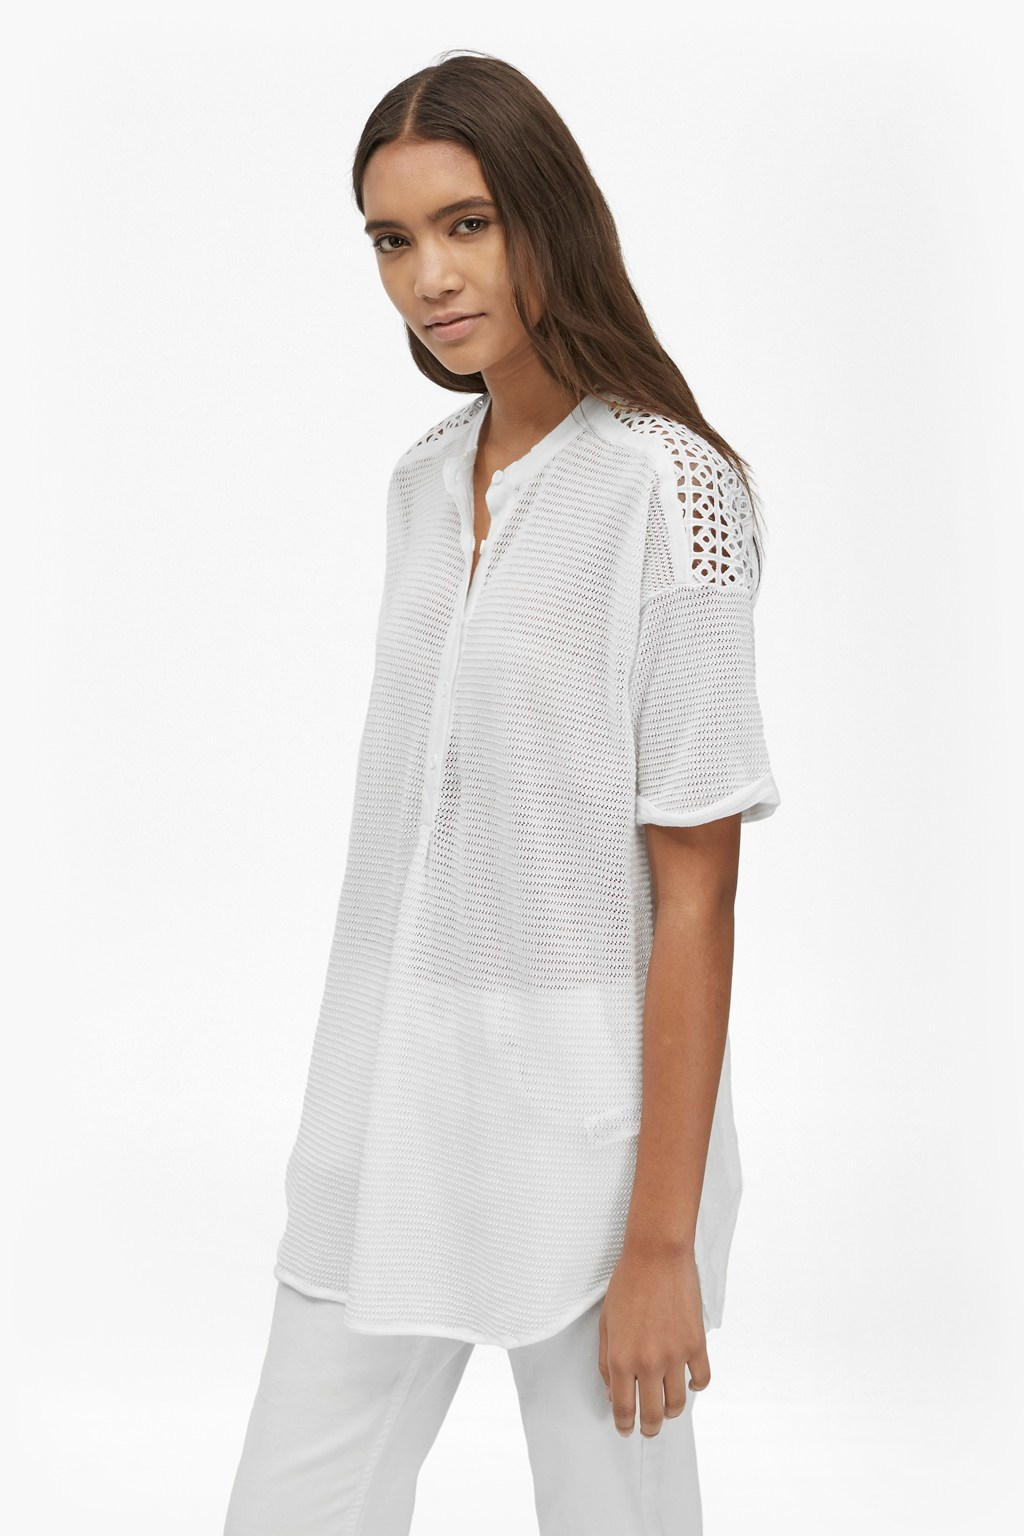 Celia Knitted Mix Longline T Shirt Summer White - pattern: plain; length: below the bottom; style: t-shirt; predominant colour: white; occasions: casual; neckline: collarstand & mandarin with v-neck; fibres: cotton - 100%; fit: loose; sleeve length: short sleeve; sleeve style: standard; texture group: cotton feel fabrics; pattern type: fabric; season: s/s 2016